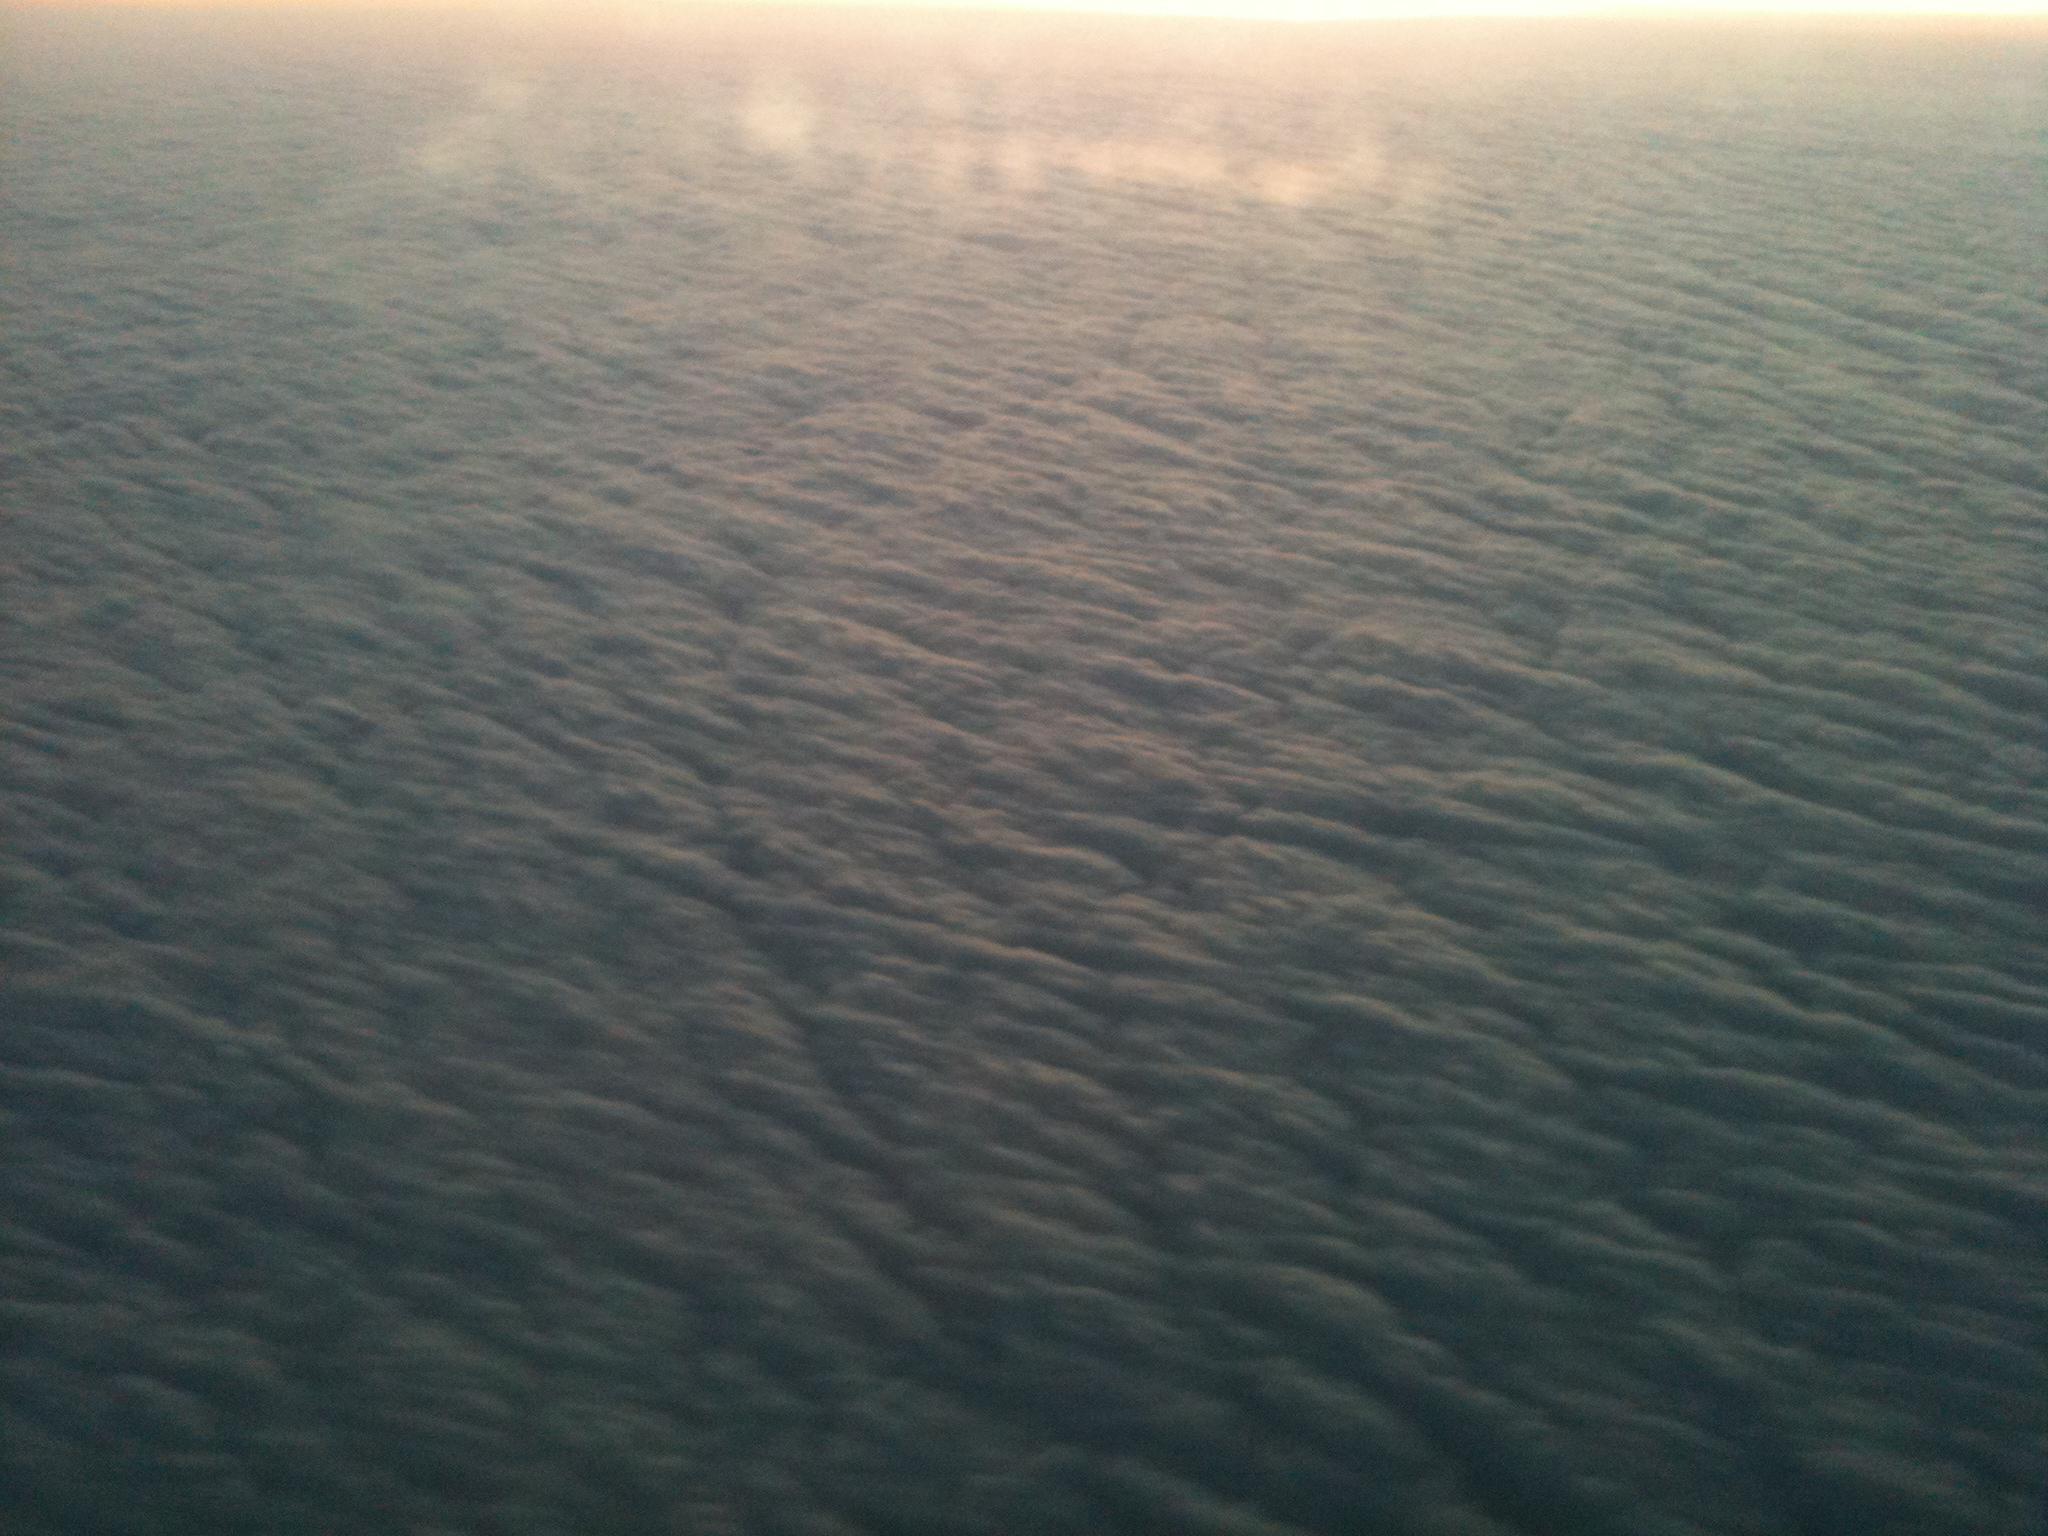 Blanket of Clouds over Texas